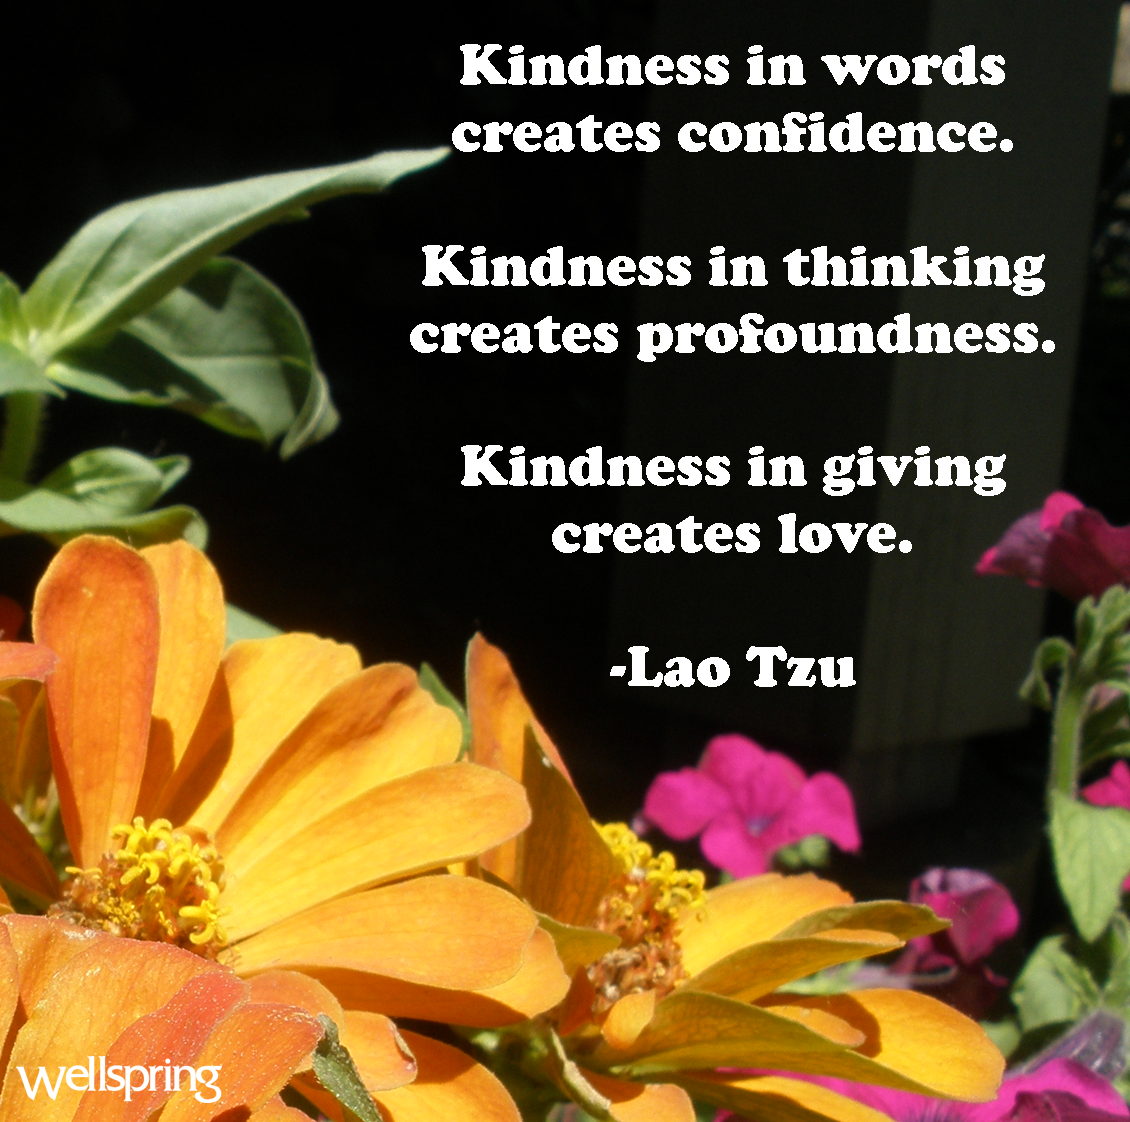 Thank You For The Kind Words Quotes: Random Acts Of Kindness